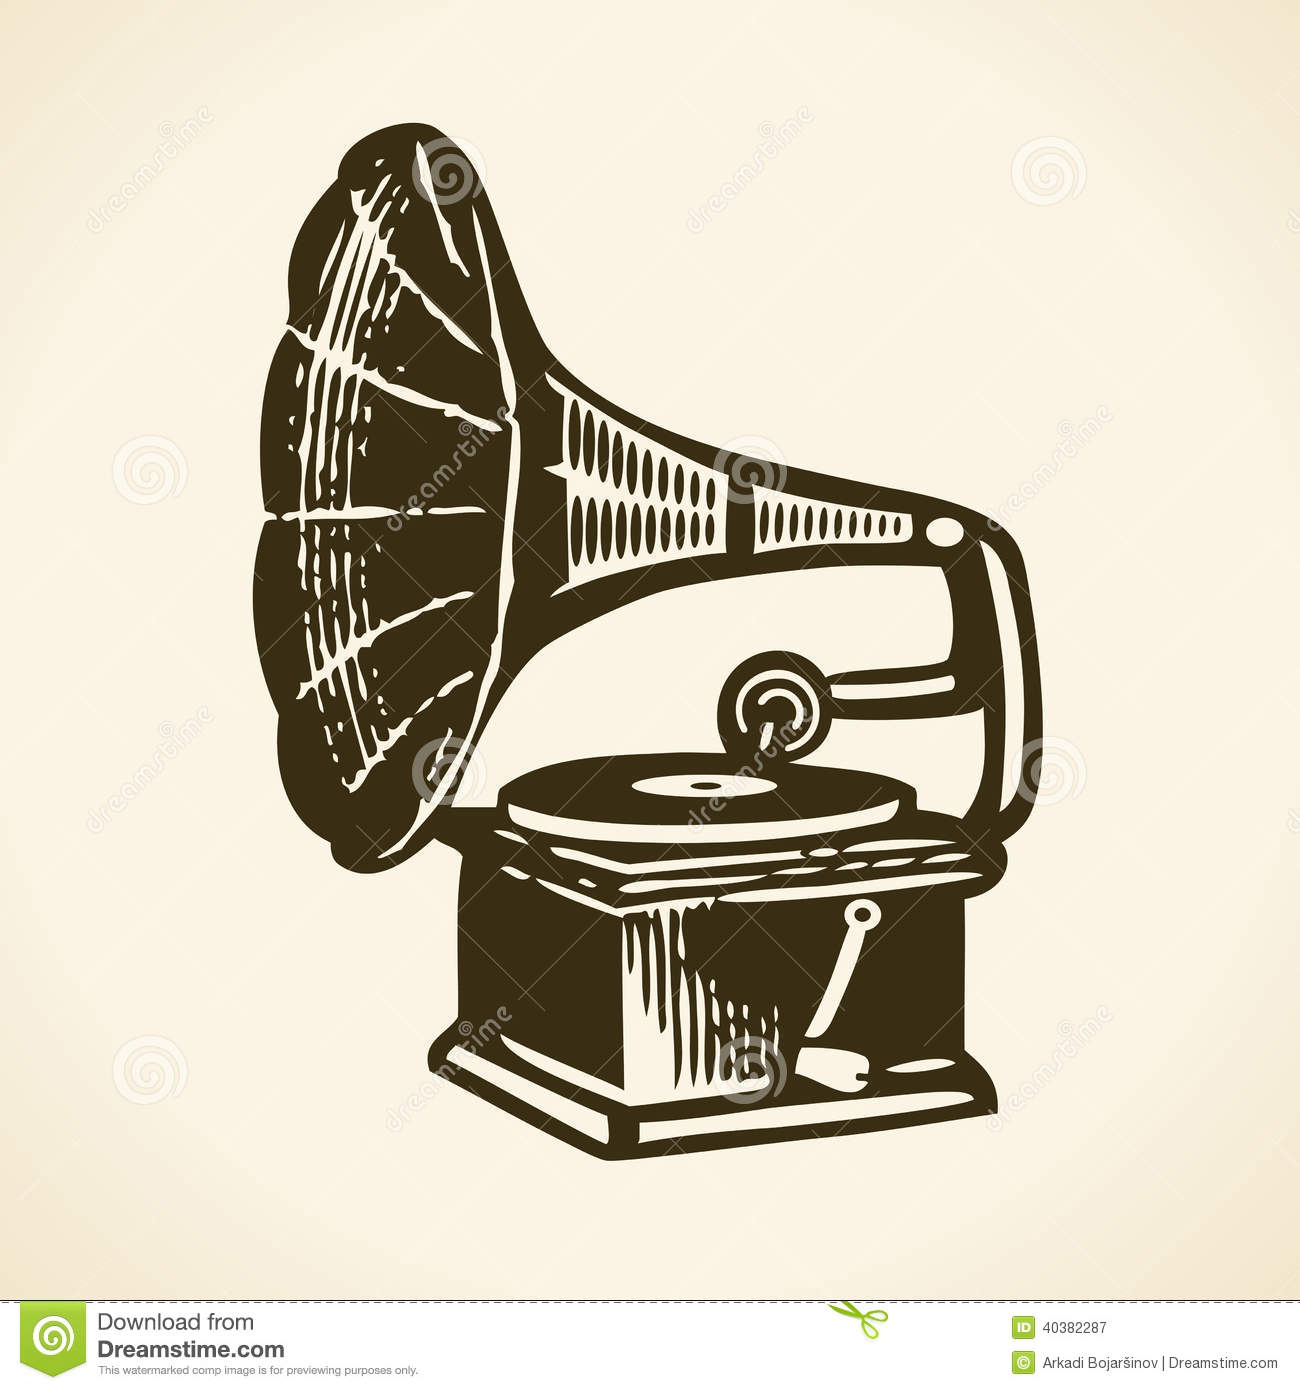 old retro gramophone stock vector illustration of aged 40382287 dreamstime com